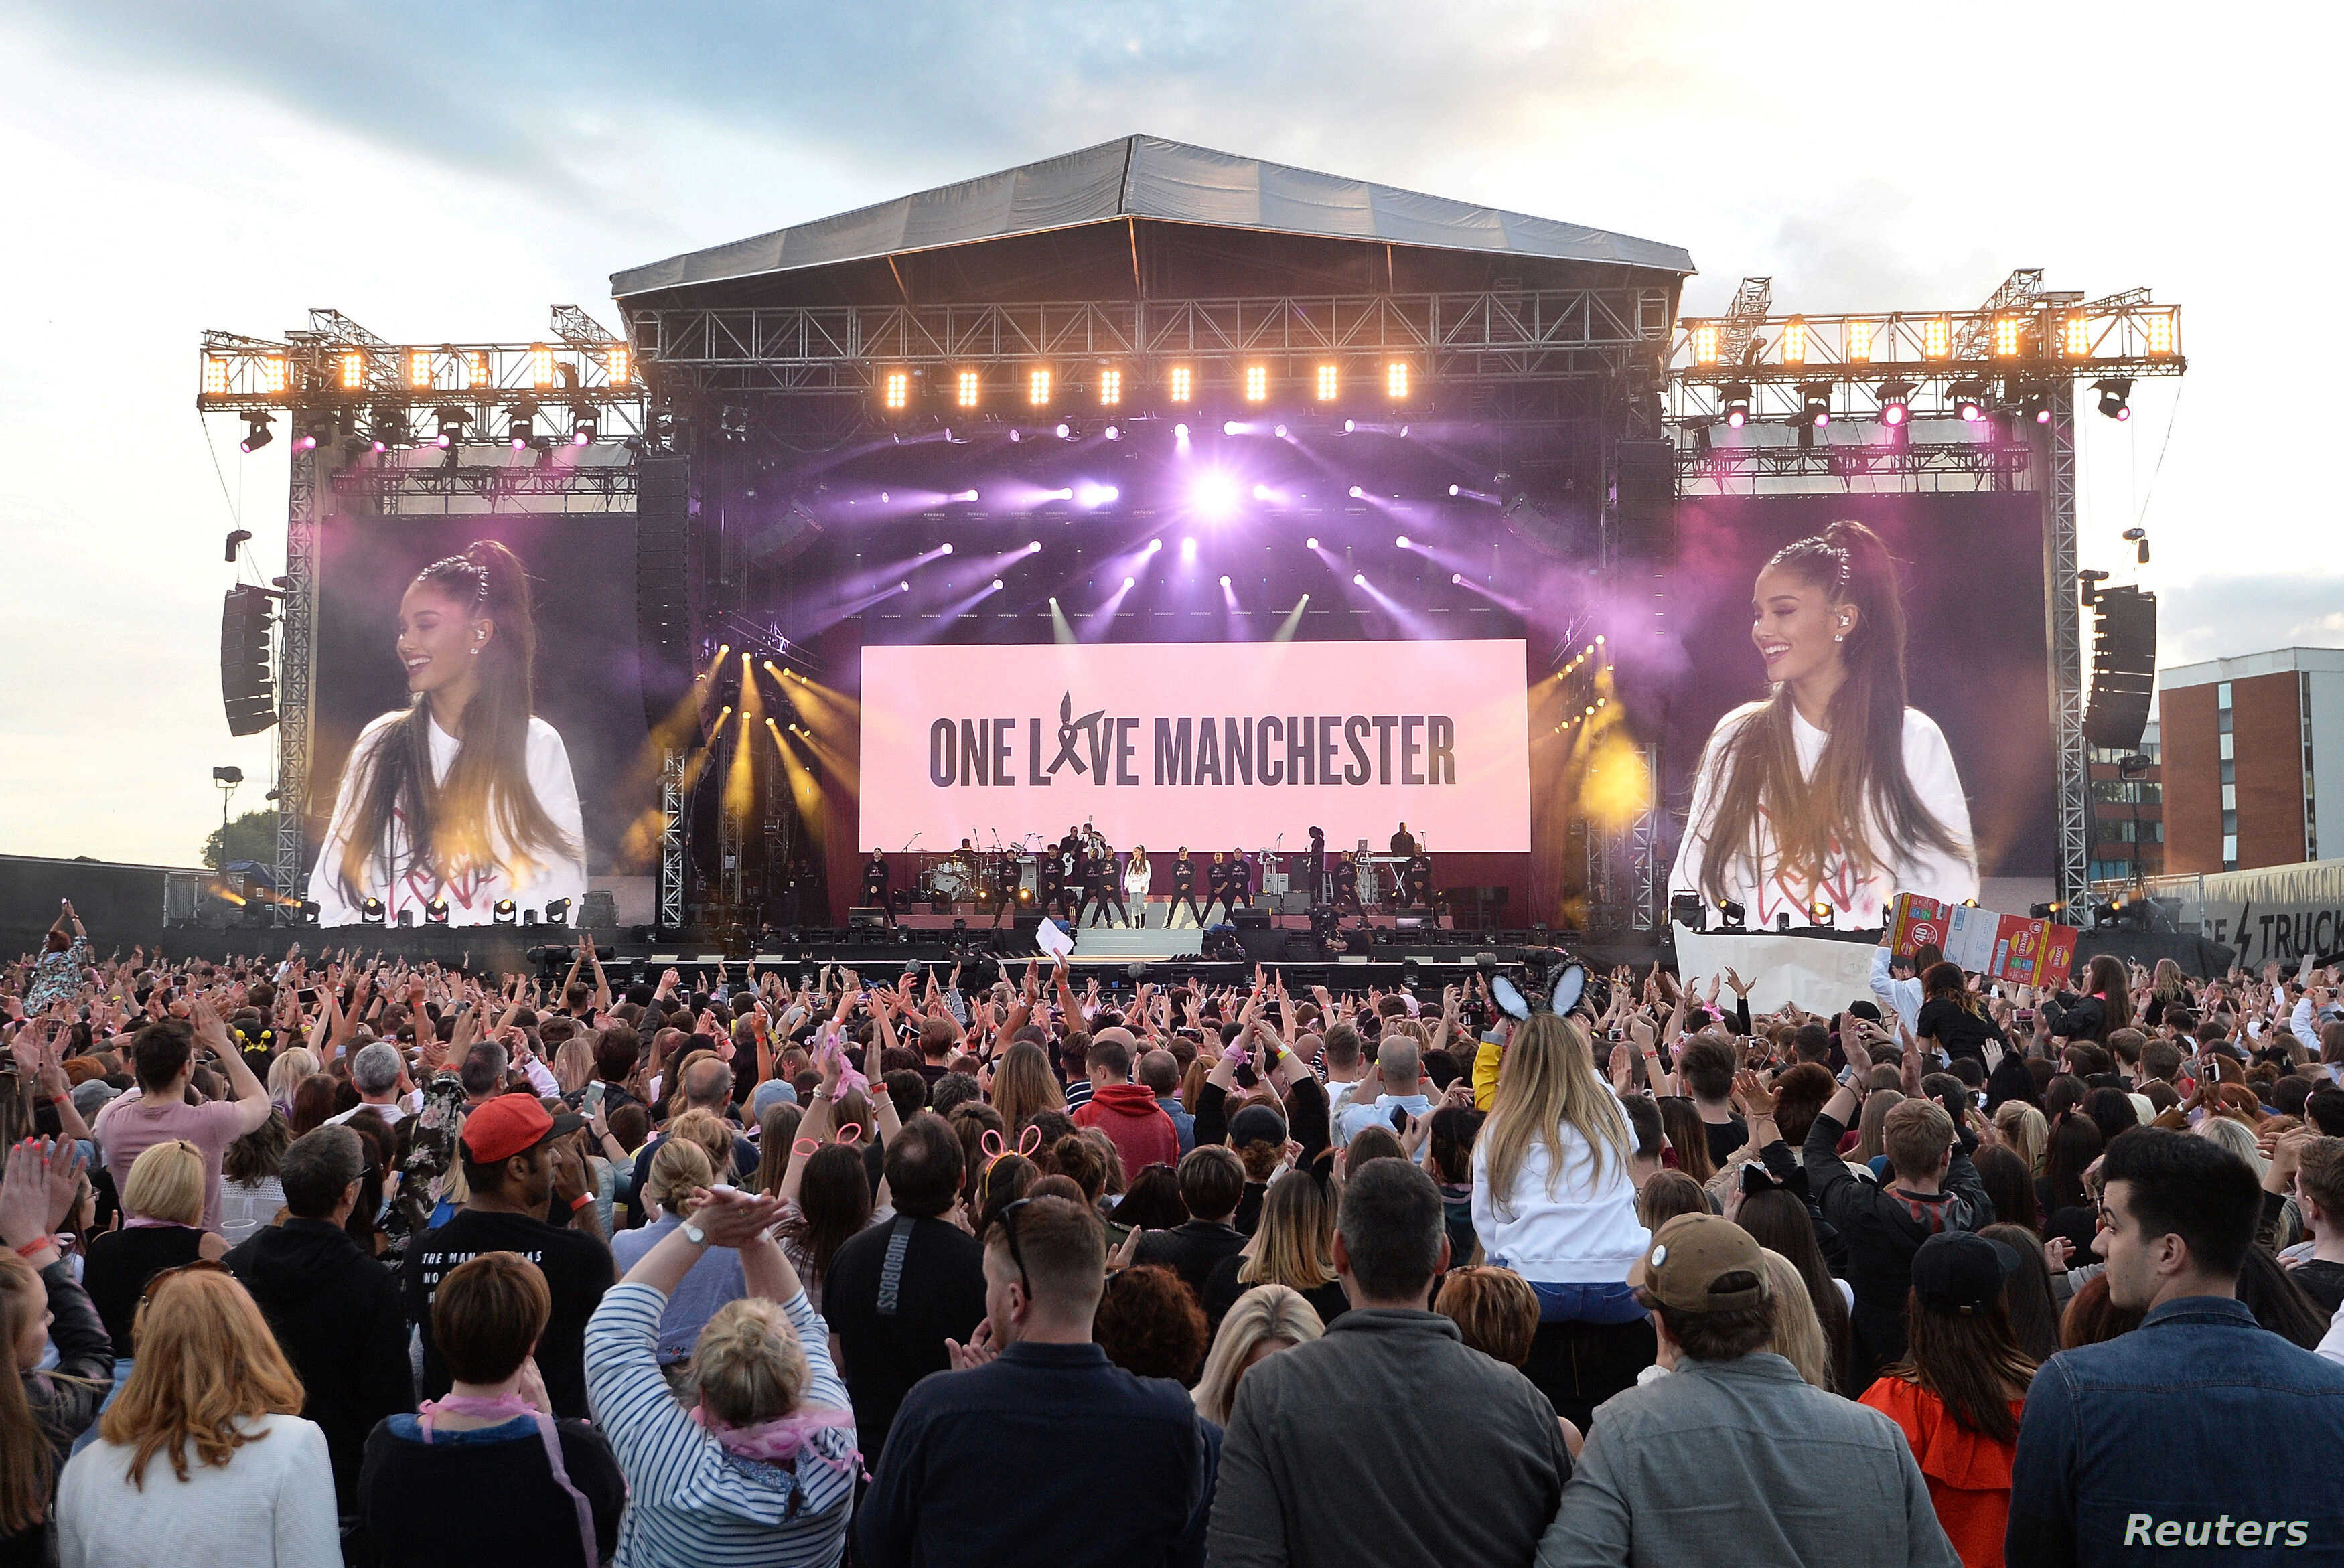 Ariana Grande performs during the One Love Manchester benefit concert for the victims of the Manchester Arena terror attack at Emirates Old Trafford, Greater Manchester, in Britain, June 4, 2017.